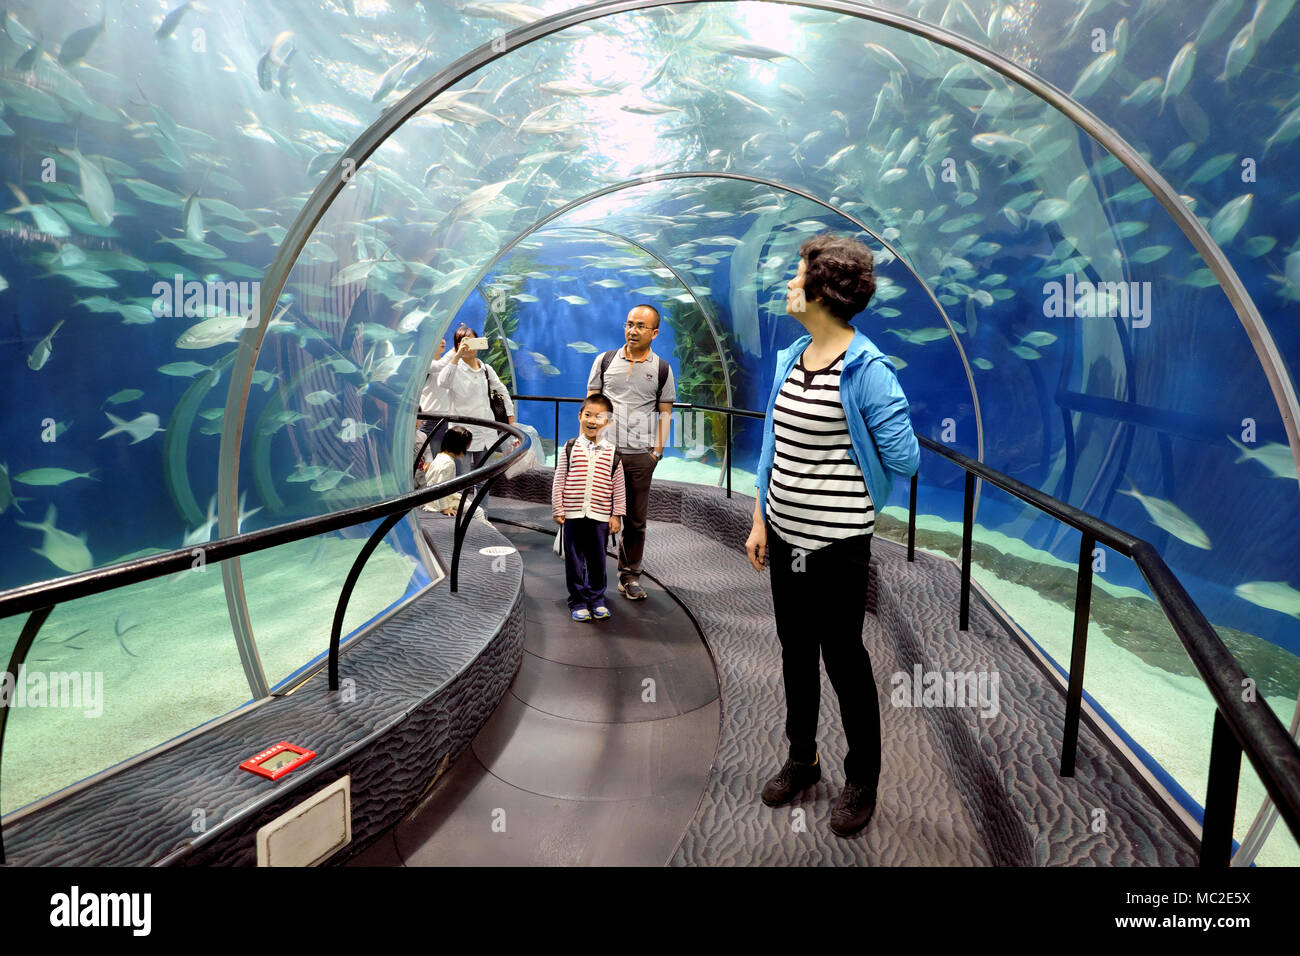 Family enjoying Shanghai Ocean Aquarium - moving through a tunnel on a conveyor belt (left), Shanghai, China - Stock Image